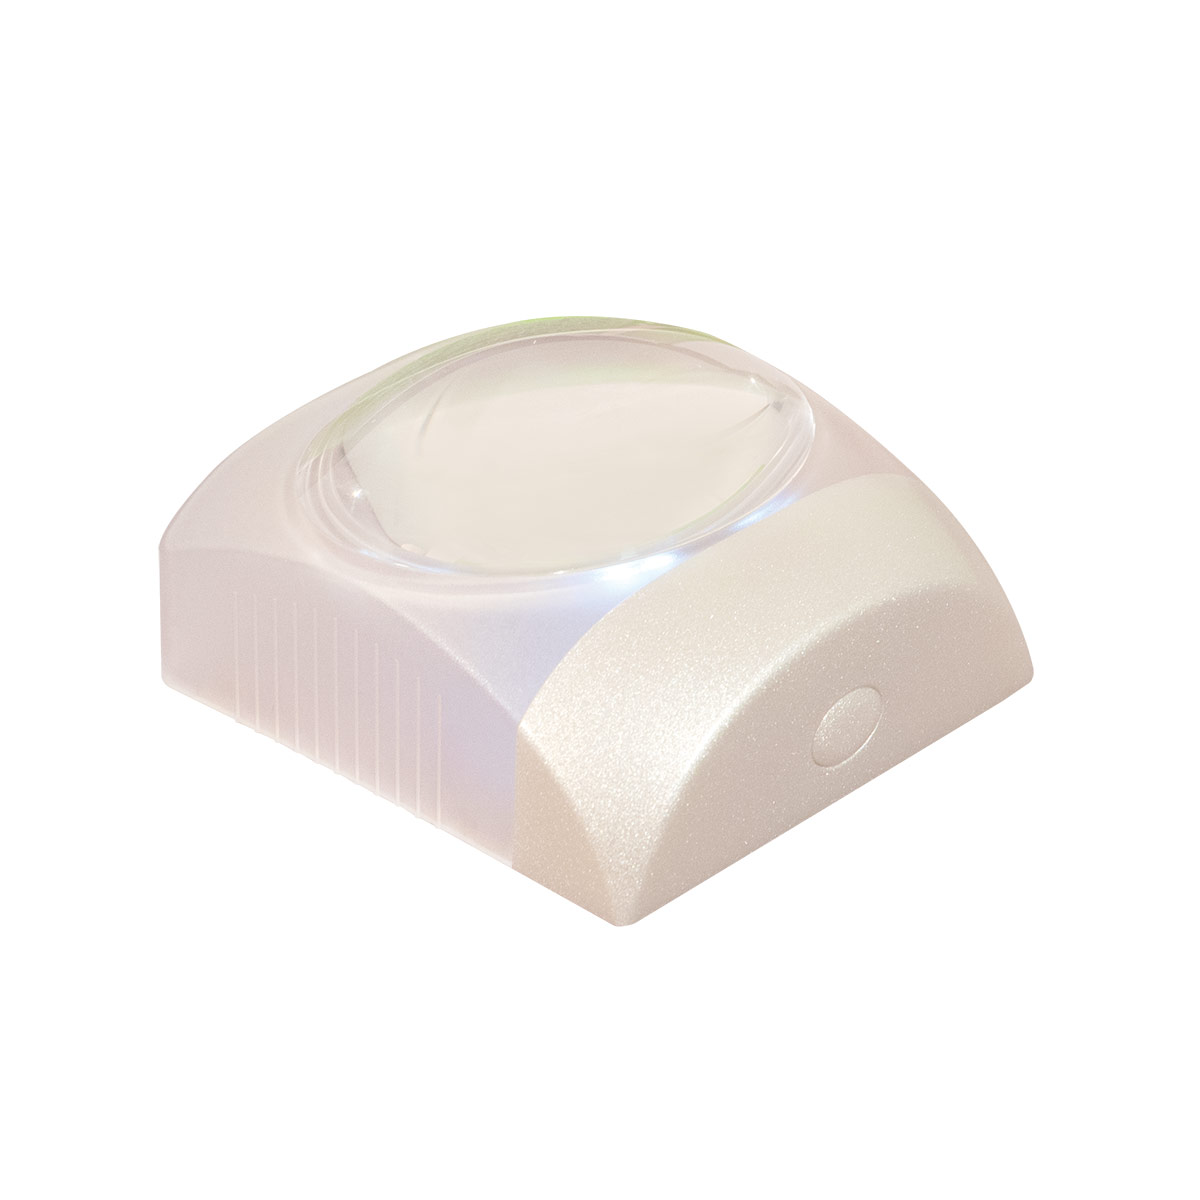 Reizen Square Stand 5X Lighted LED Dome Magnifier